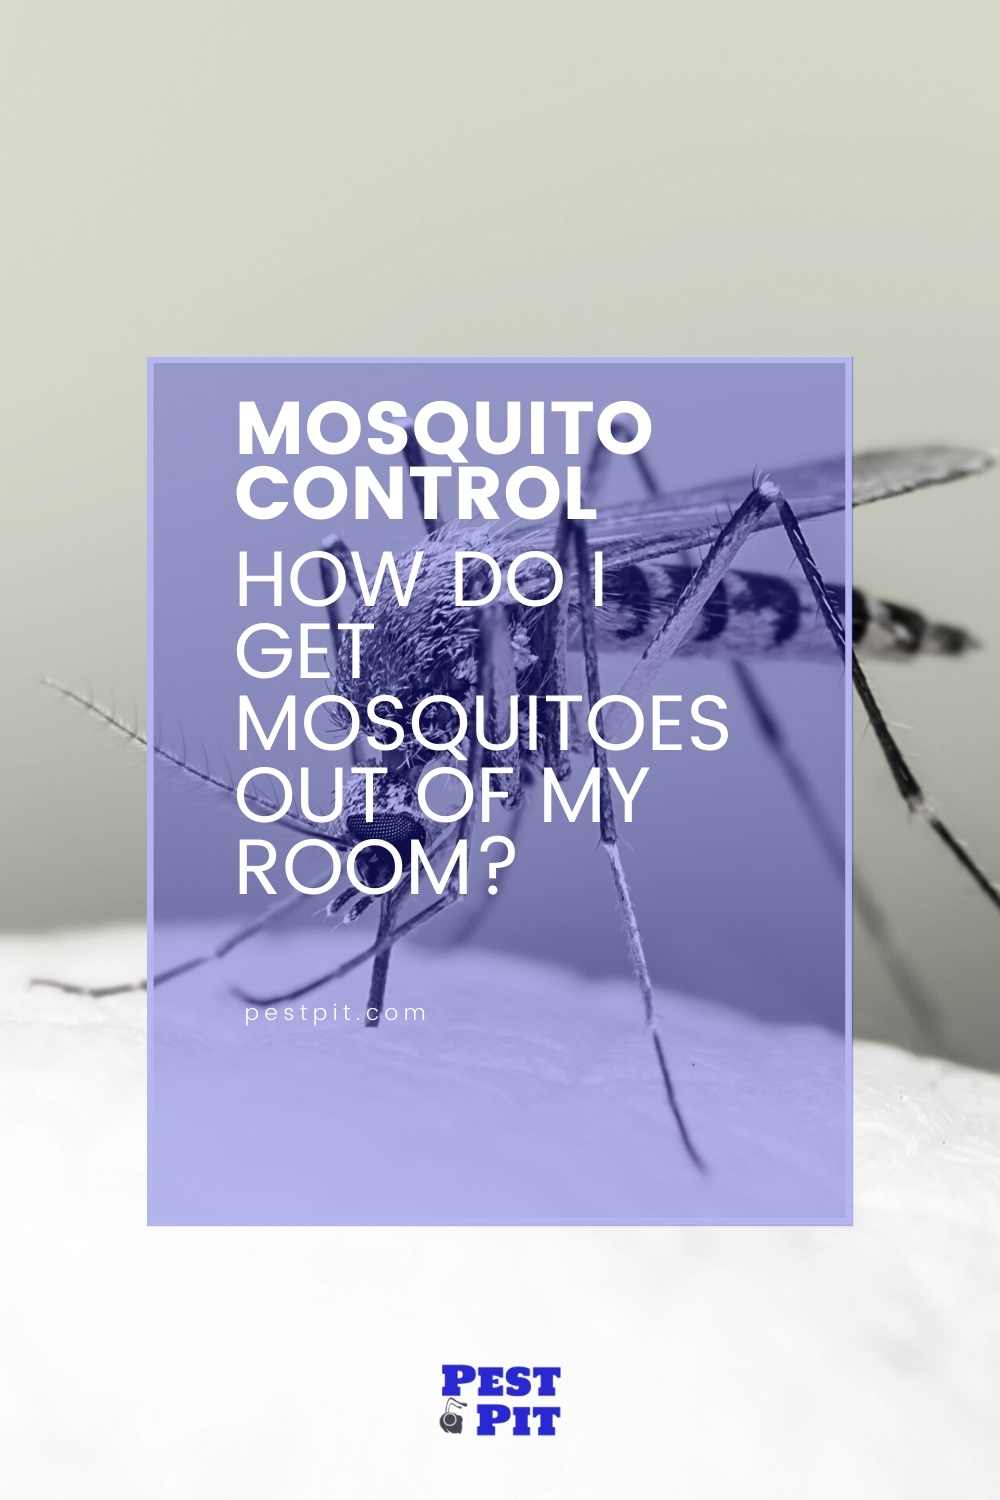 How Do I Get Mosquitoes Out Of My Room